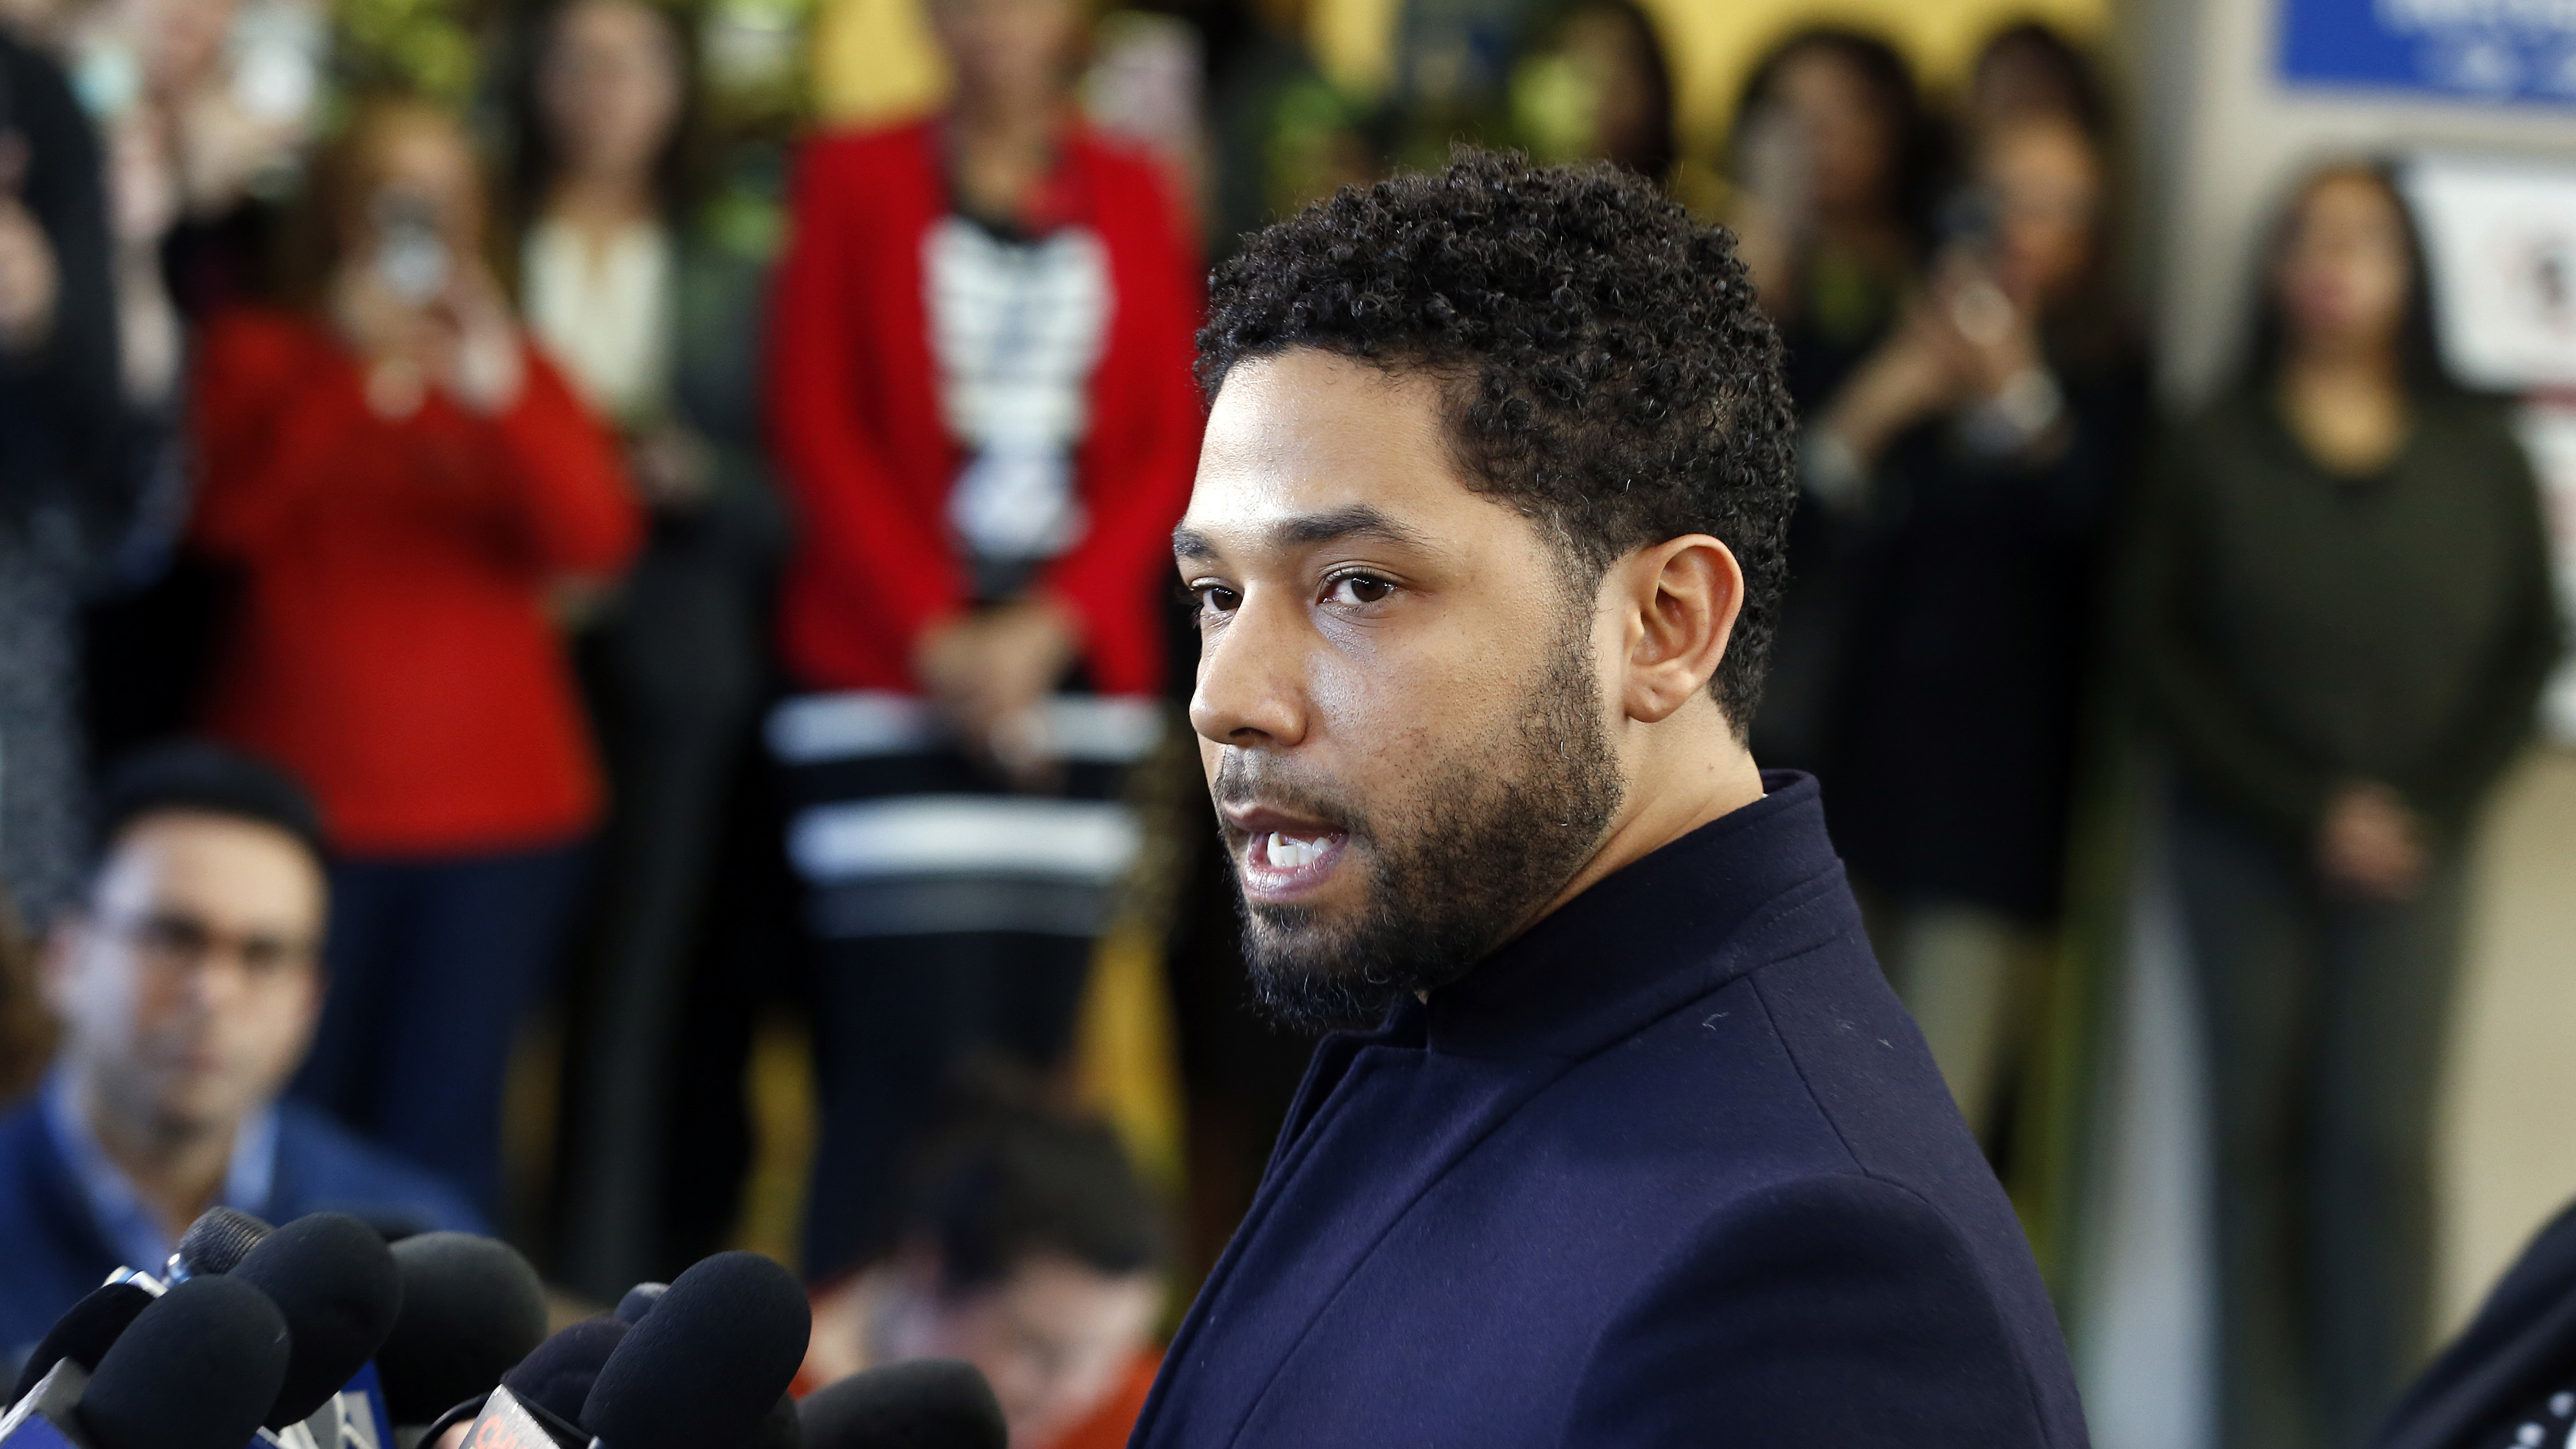 Prosecutors Drop Charges Against 'Empire' Actor Jussie Smollett, Angering Police